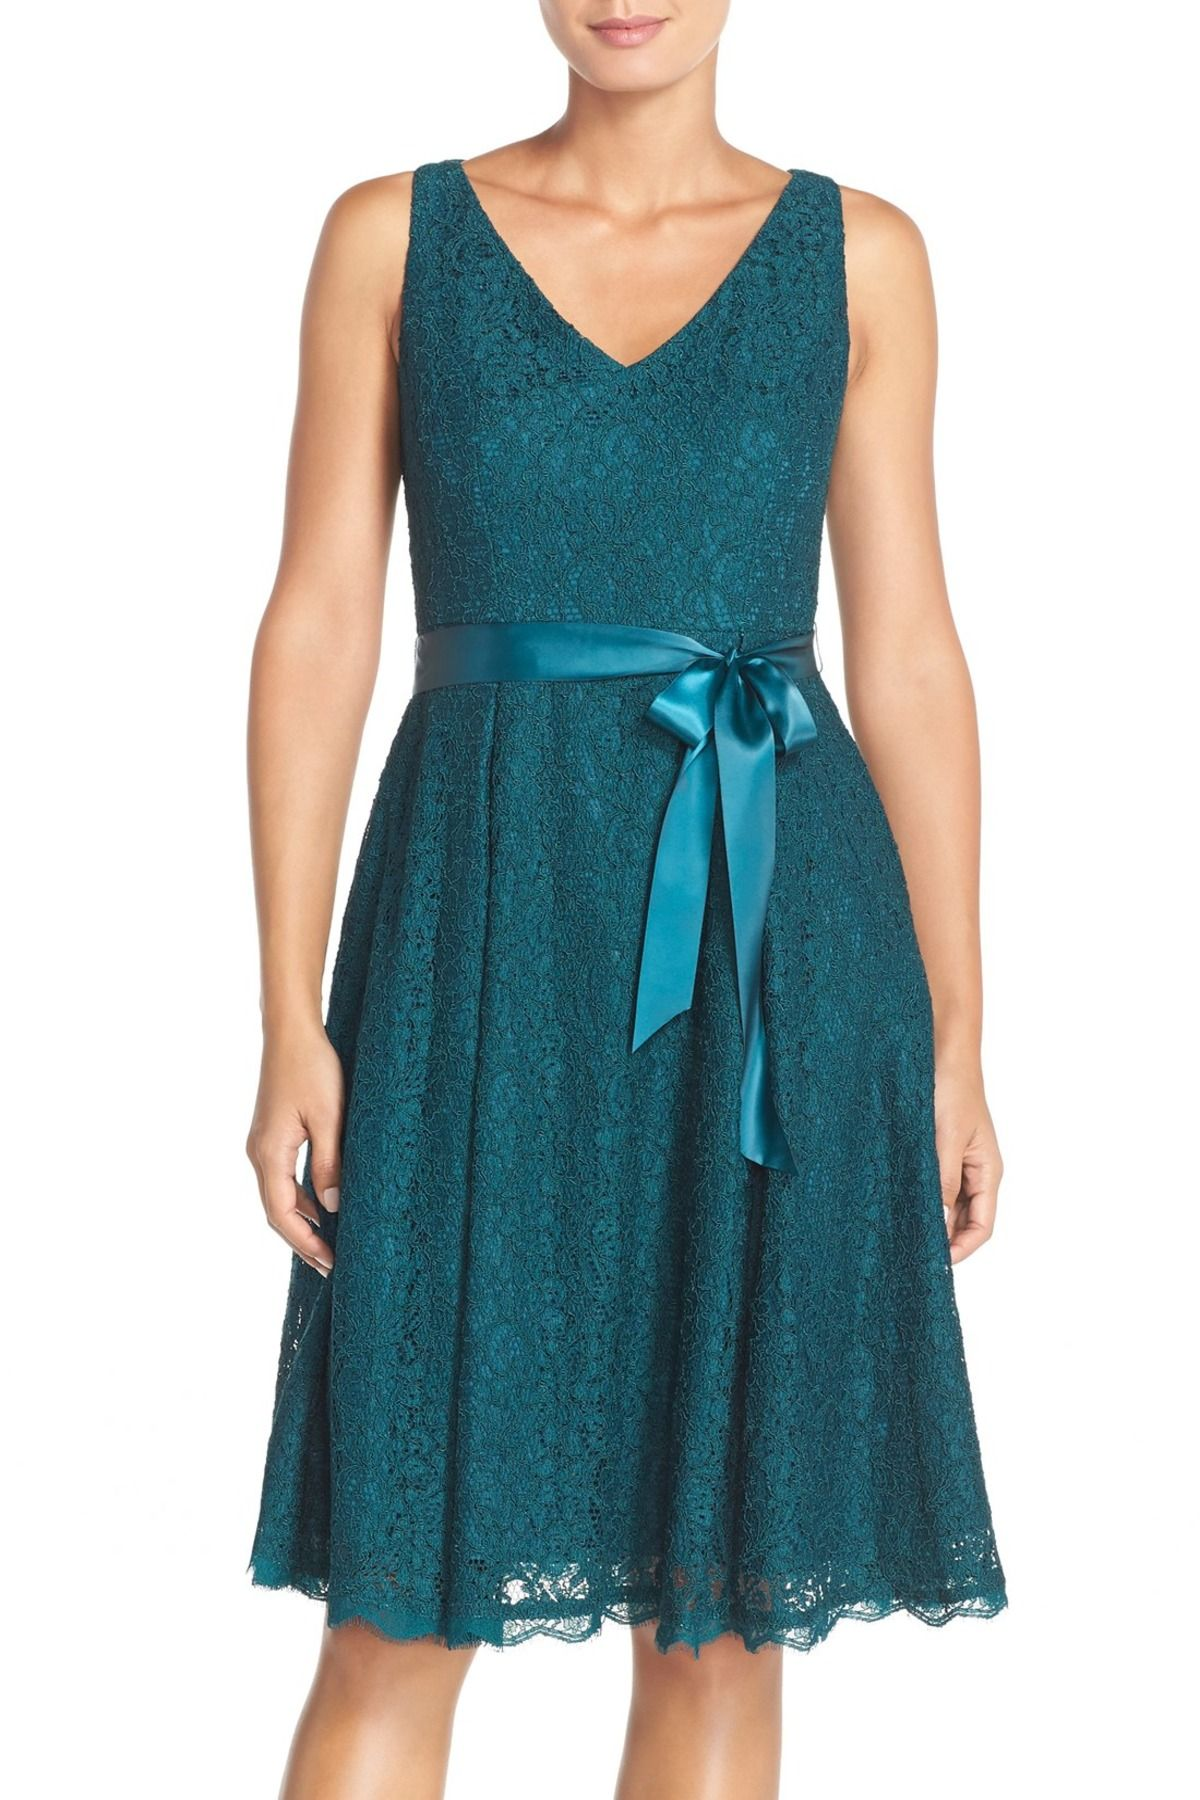 Adrianna Papell | Belted Lace Fit & Flare Dress (Petite | Fit flare ...